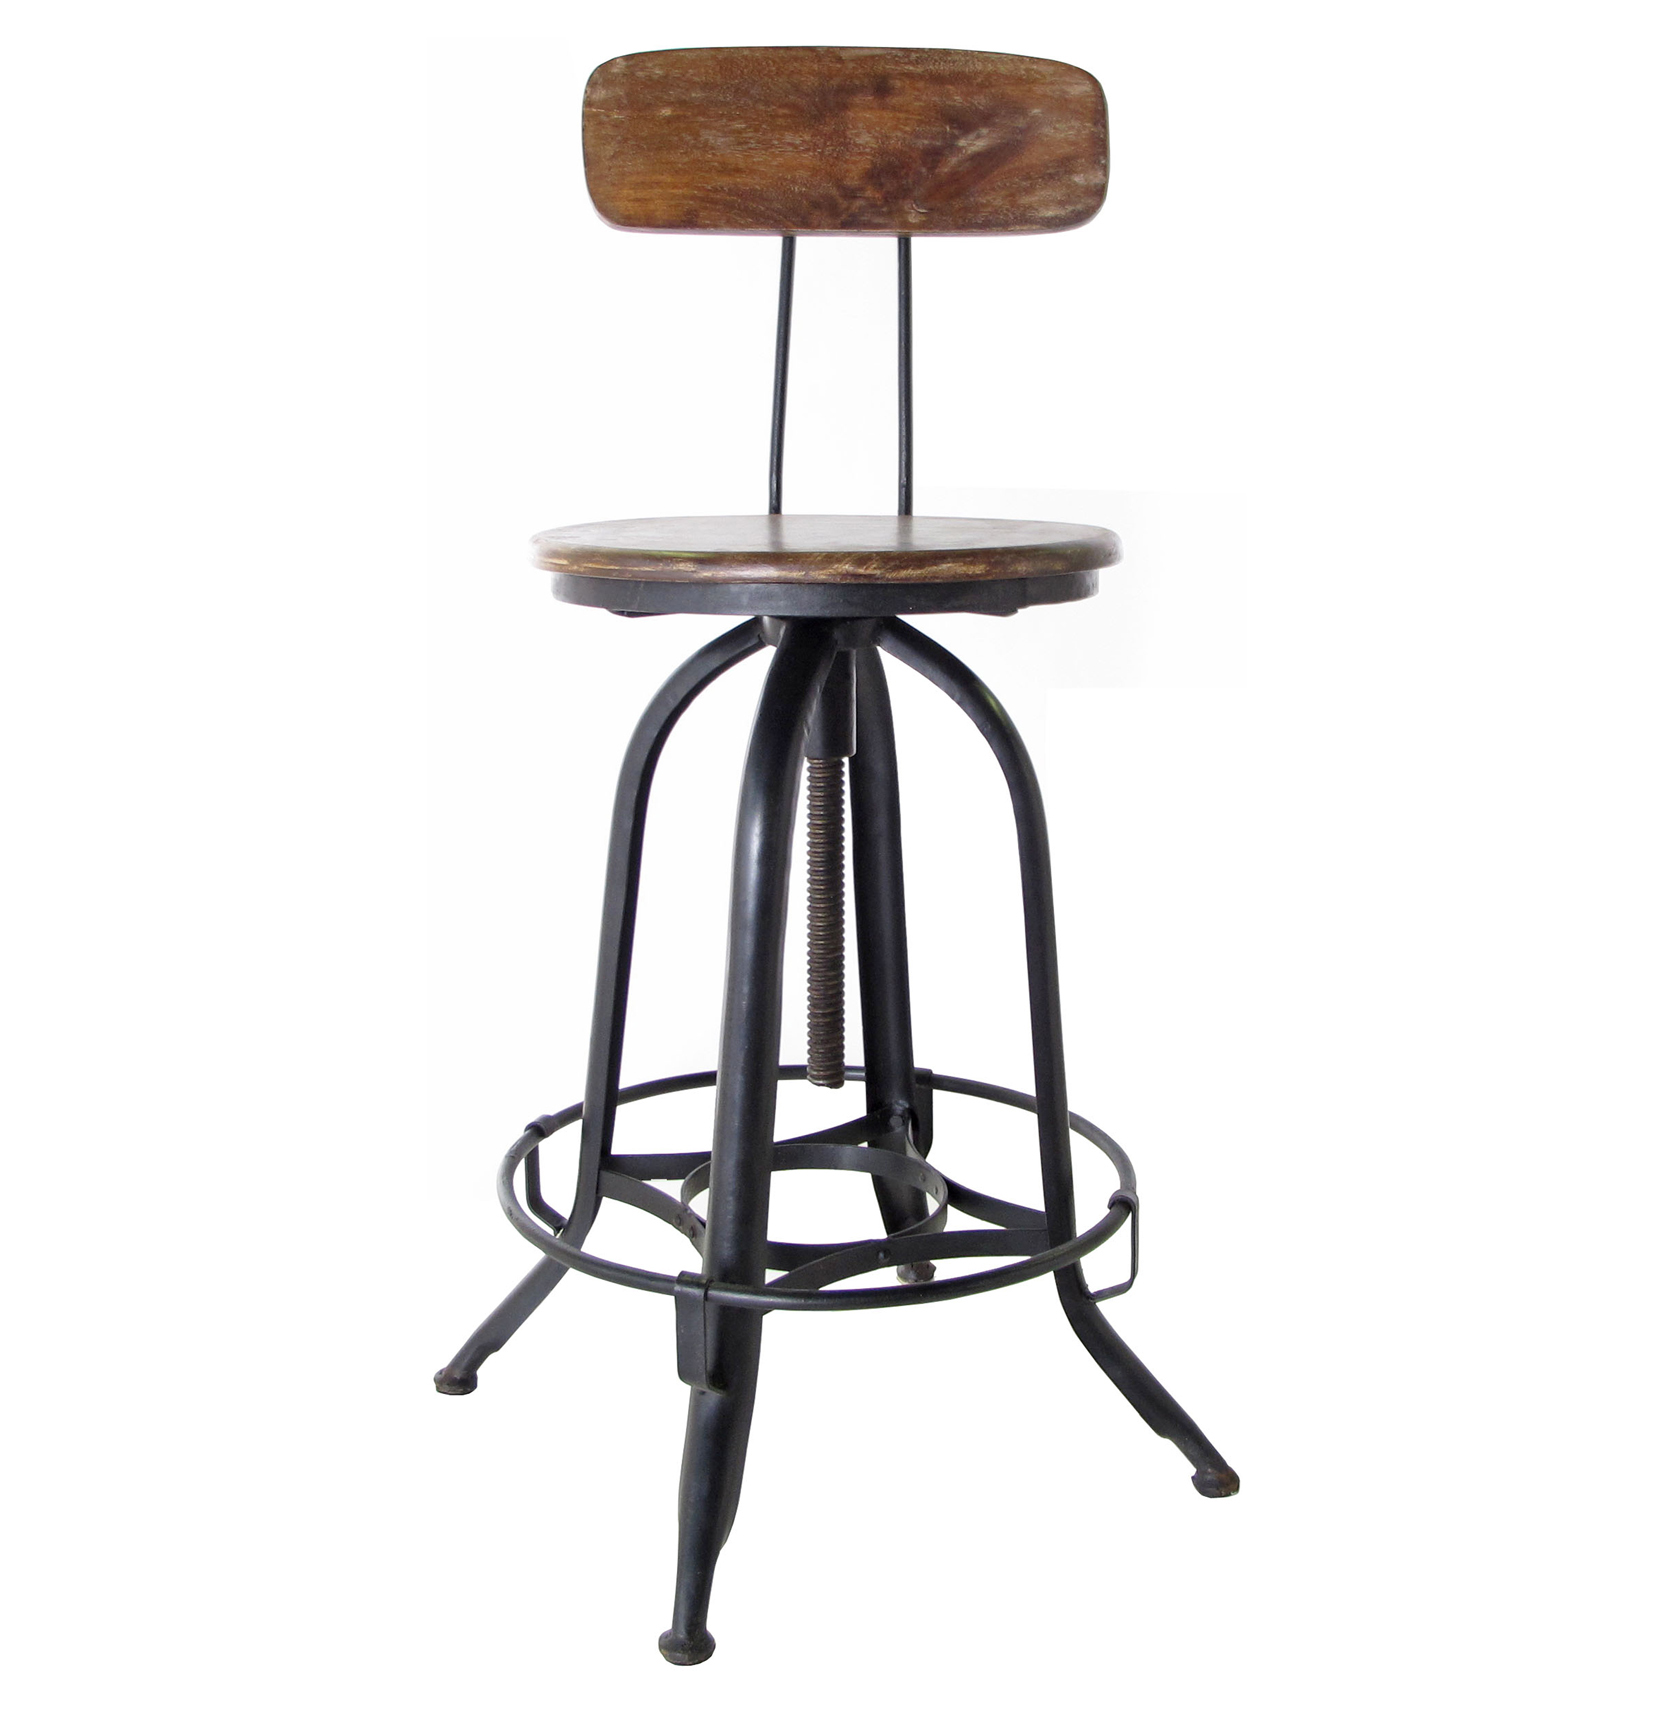 Industrial Bar Stools With Backs Architect 39s Industrial Wood Iron Counter Bar Swivel Stool